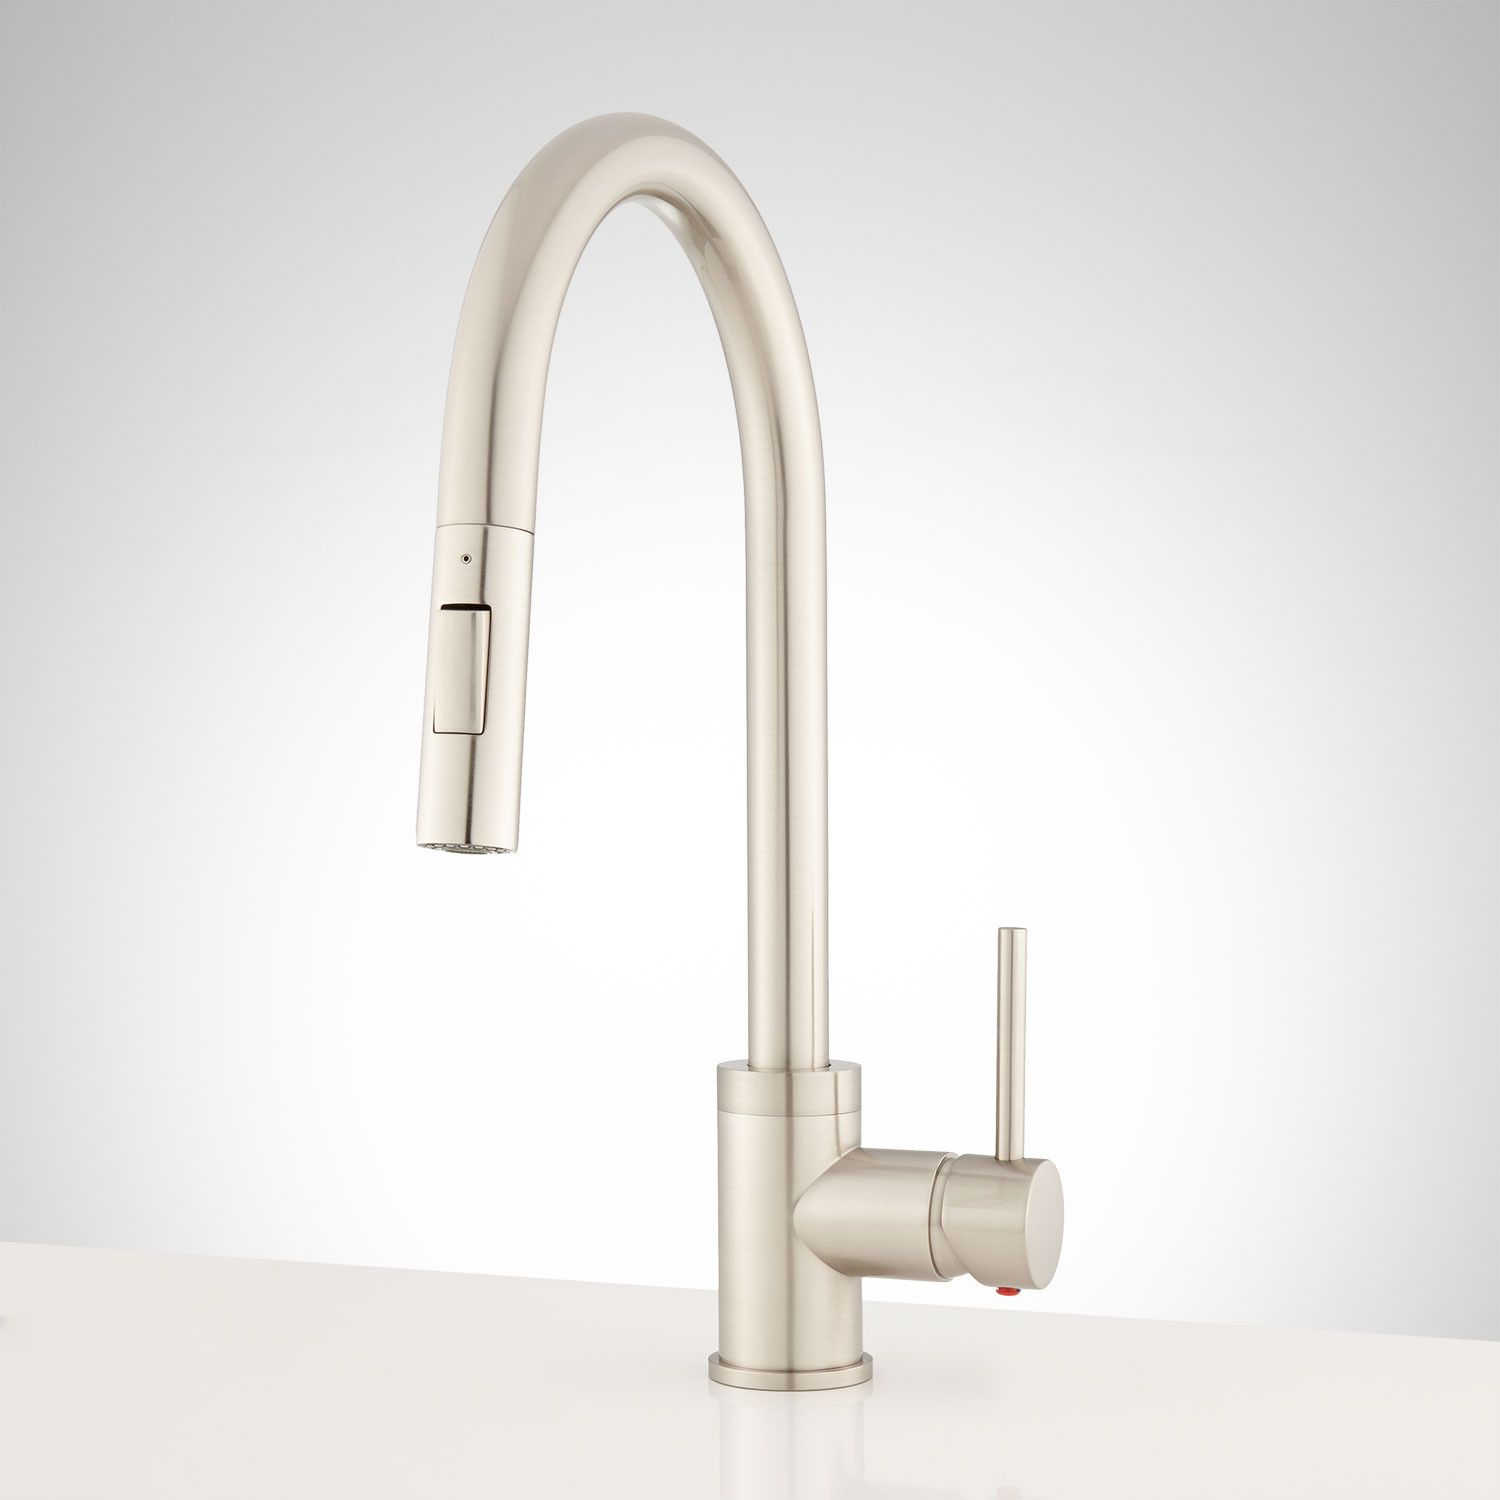 bocard single hole pull down kitchen faucet modern kitchen rh pinterest com